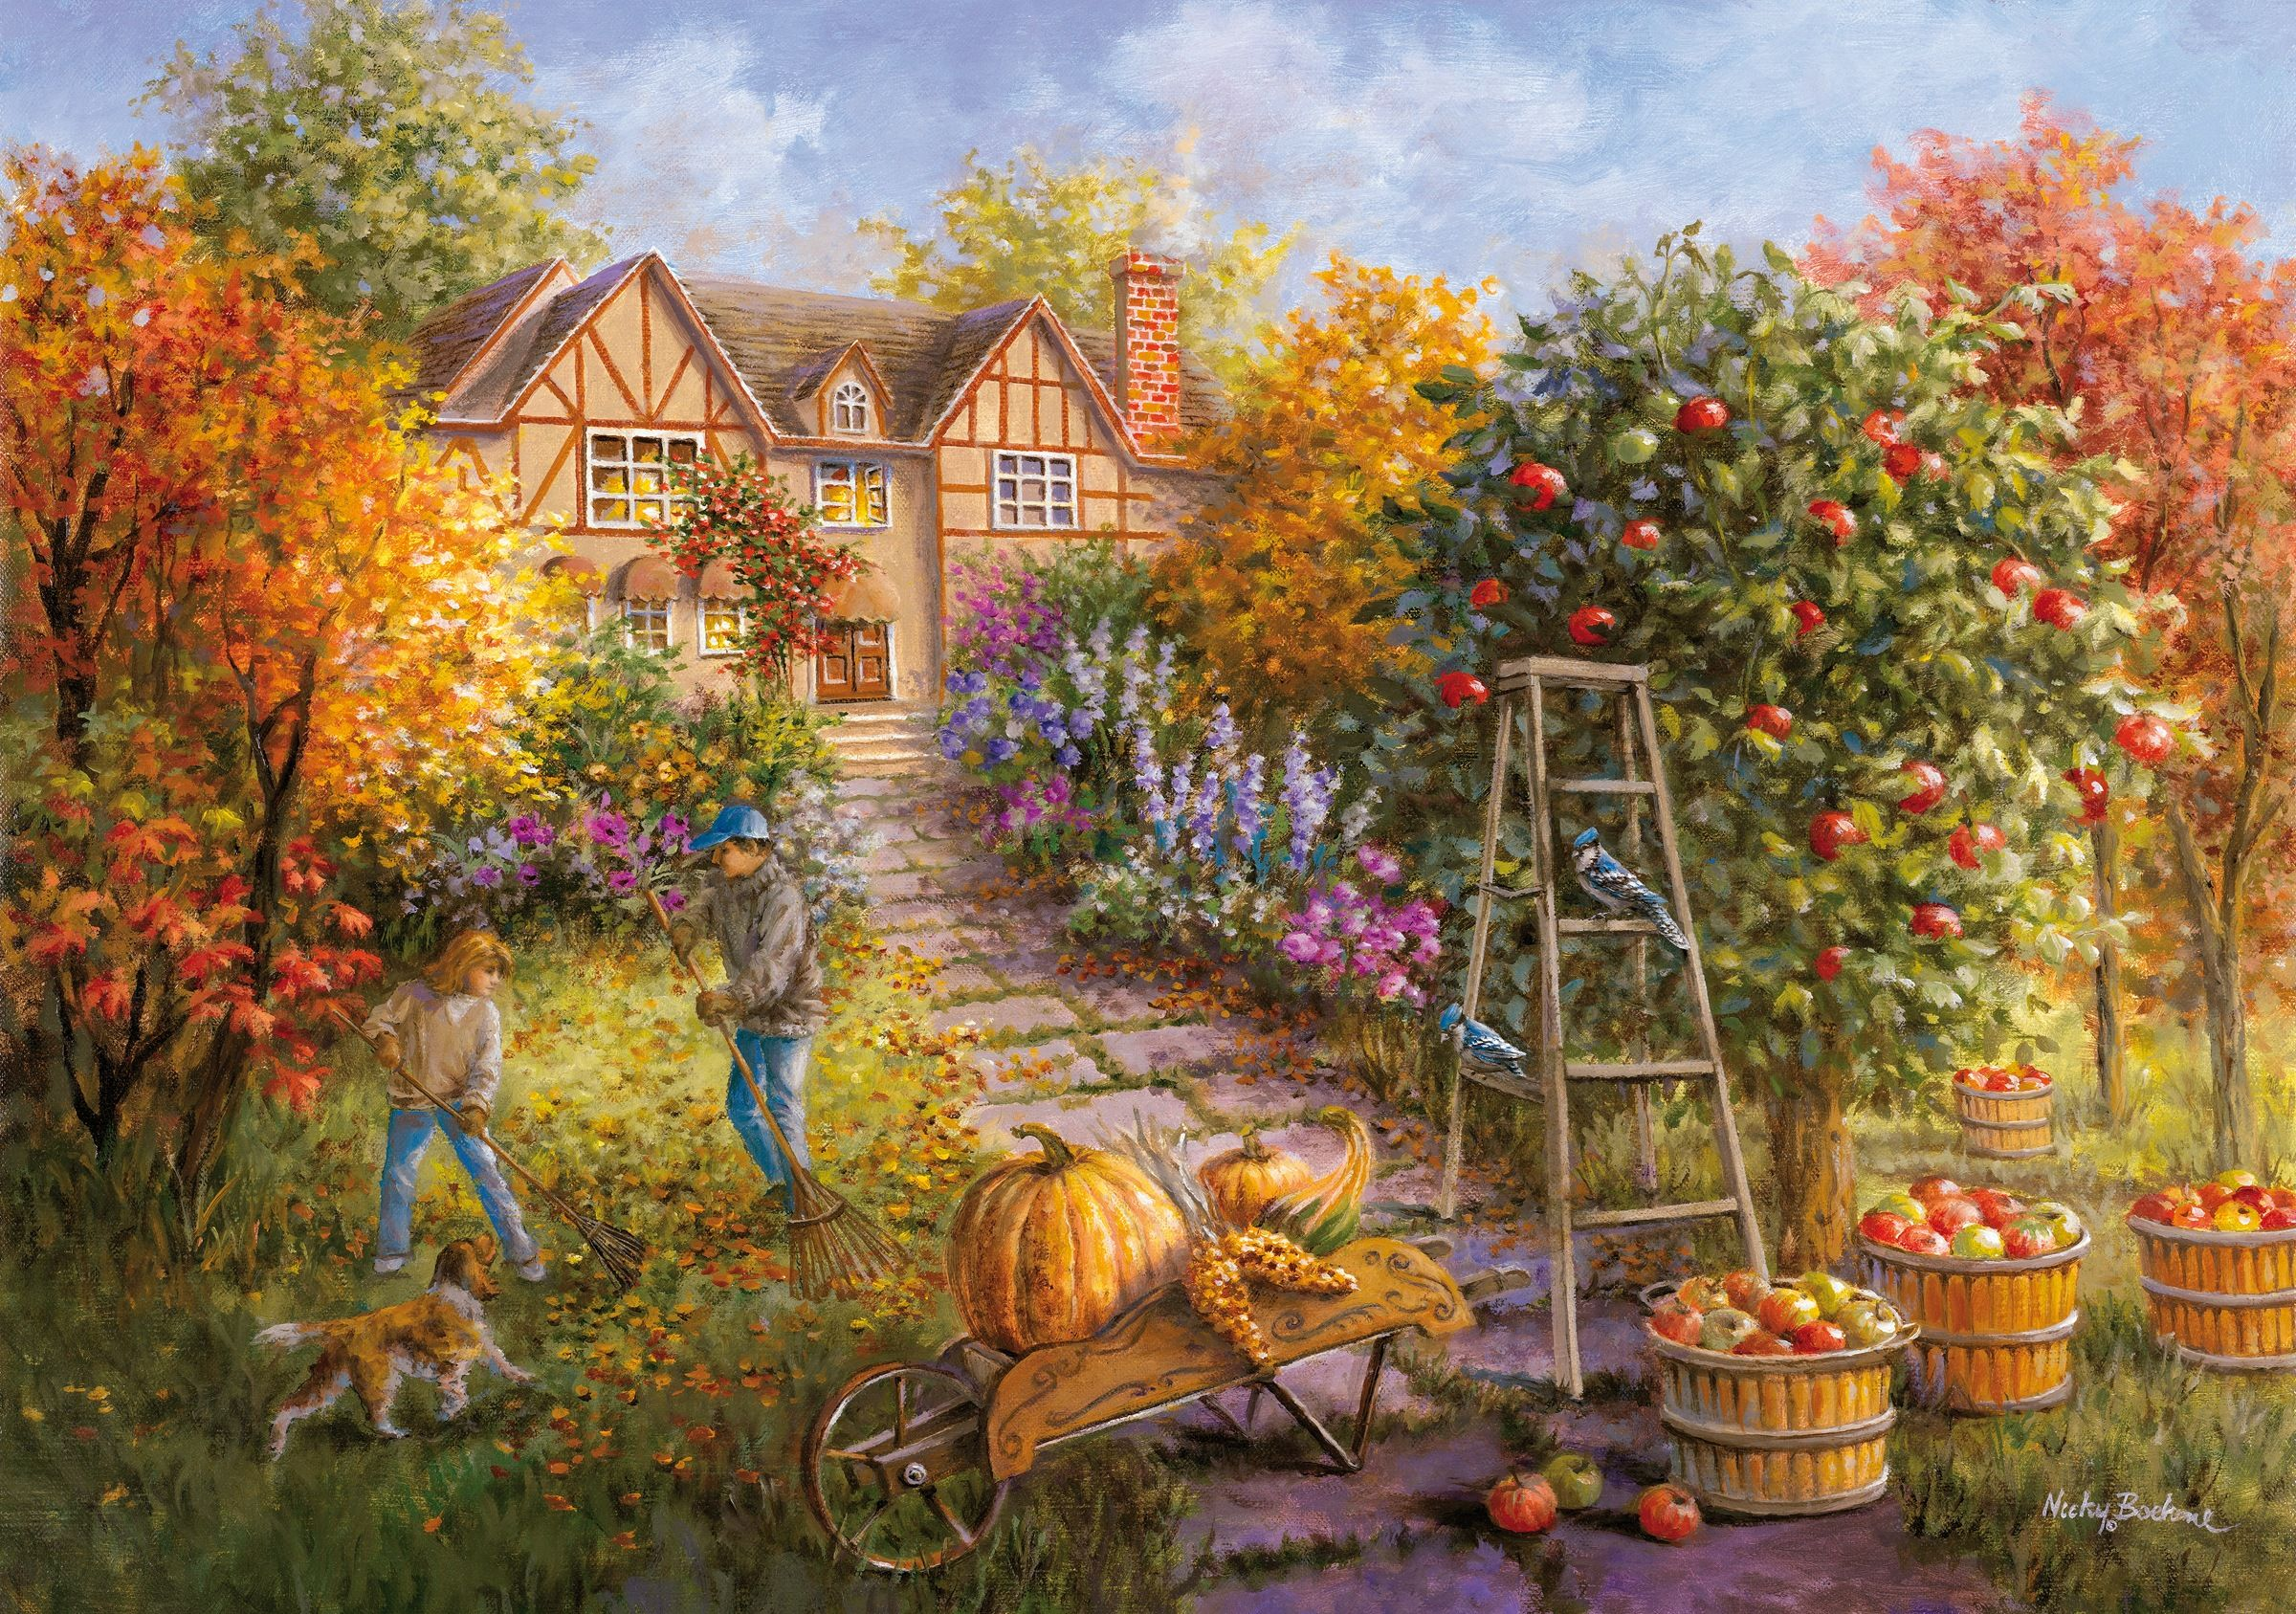 1000 Pieces Jigsaw Puzzle On The Afternoon Of The Woods by Nicky Boehme